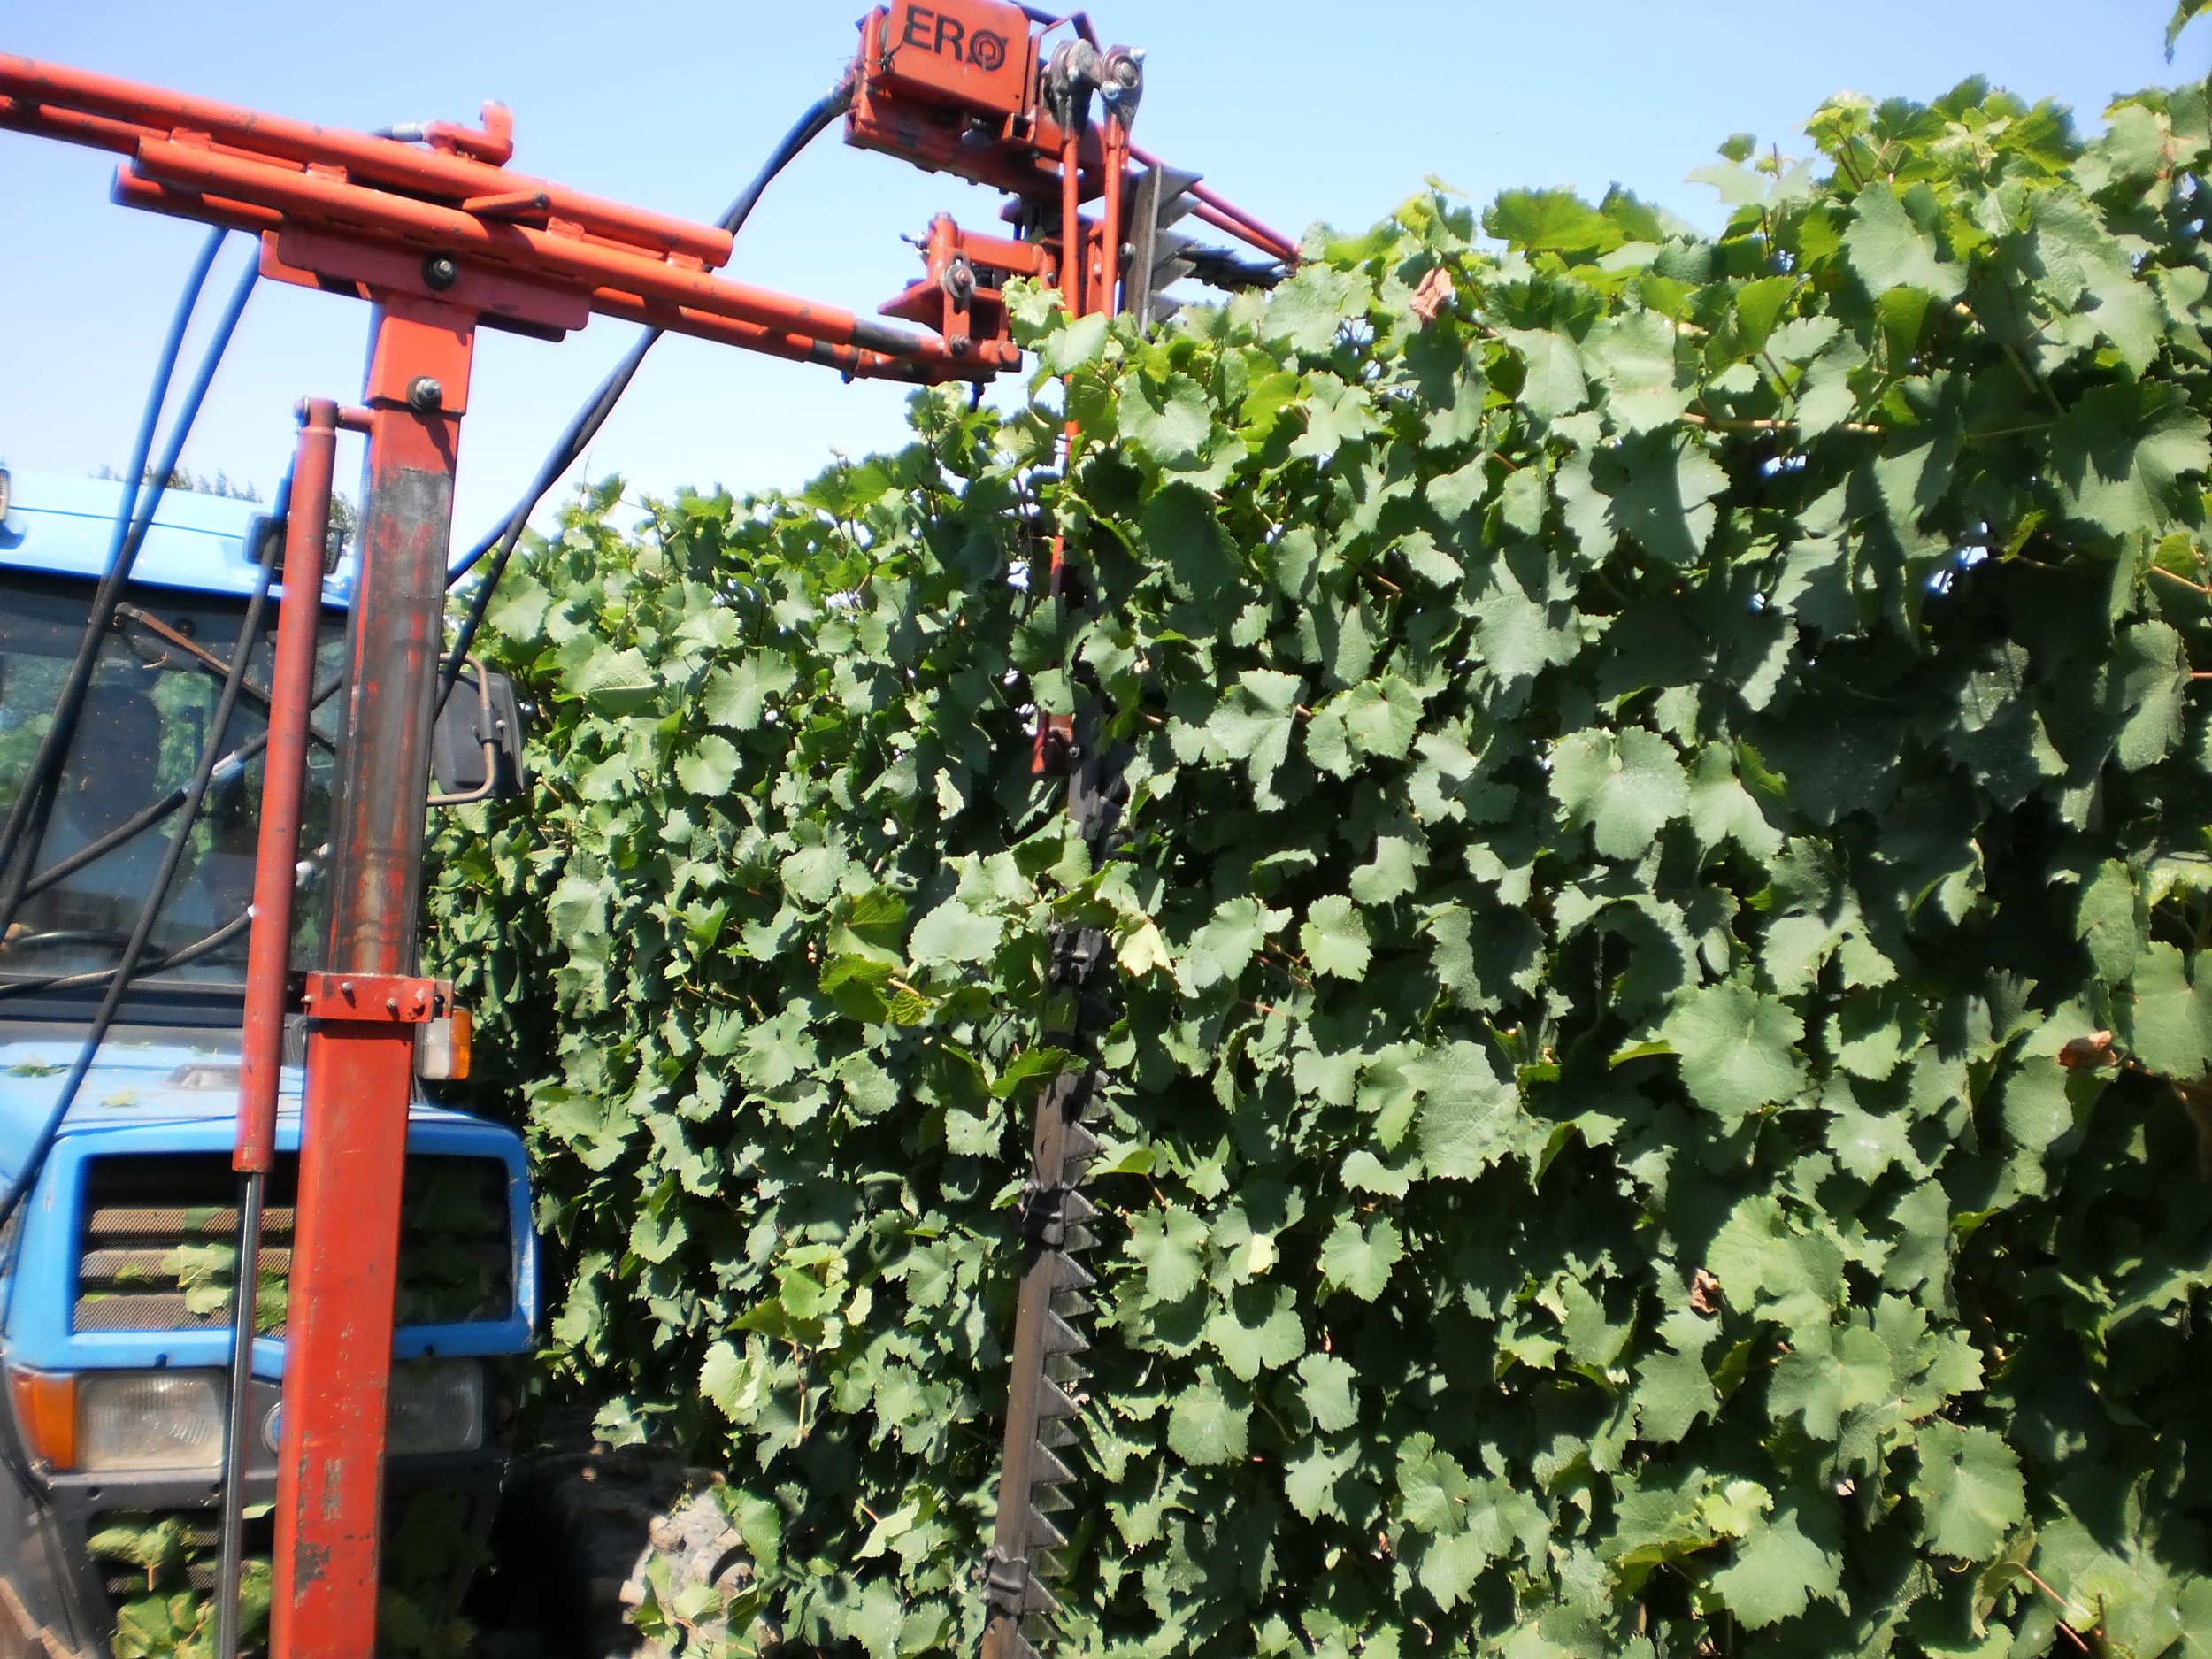 Our hydraulic hedger keeps vines neat and tidy with minimal fuss.